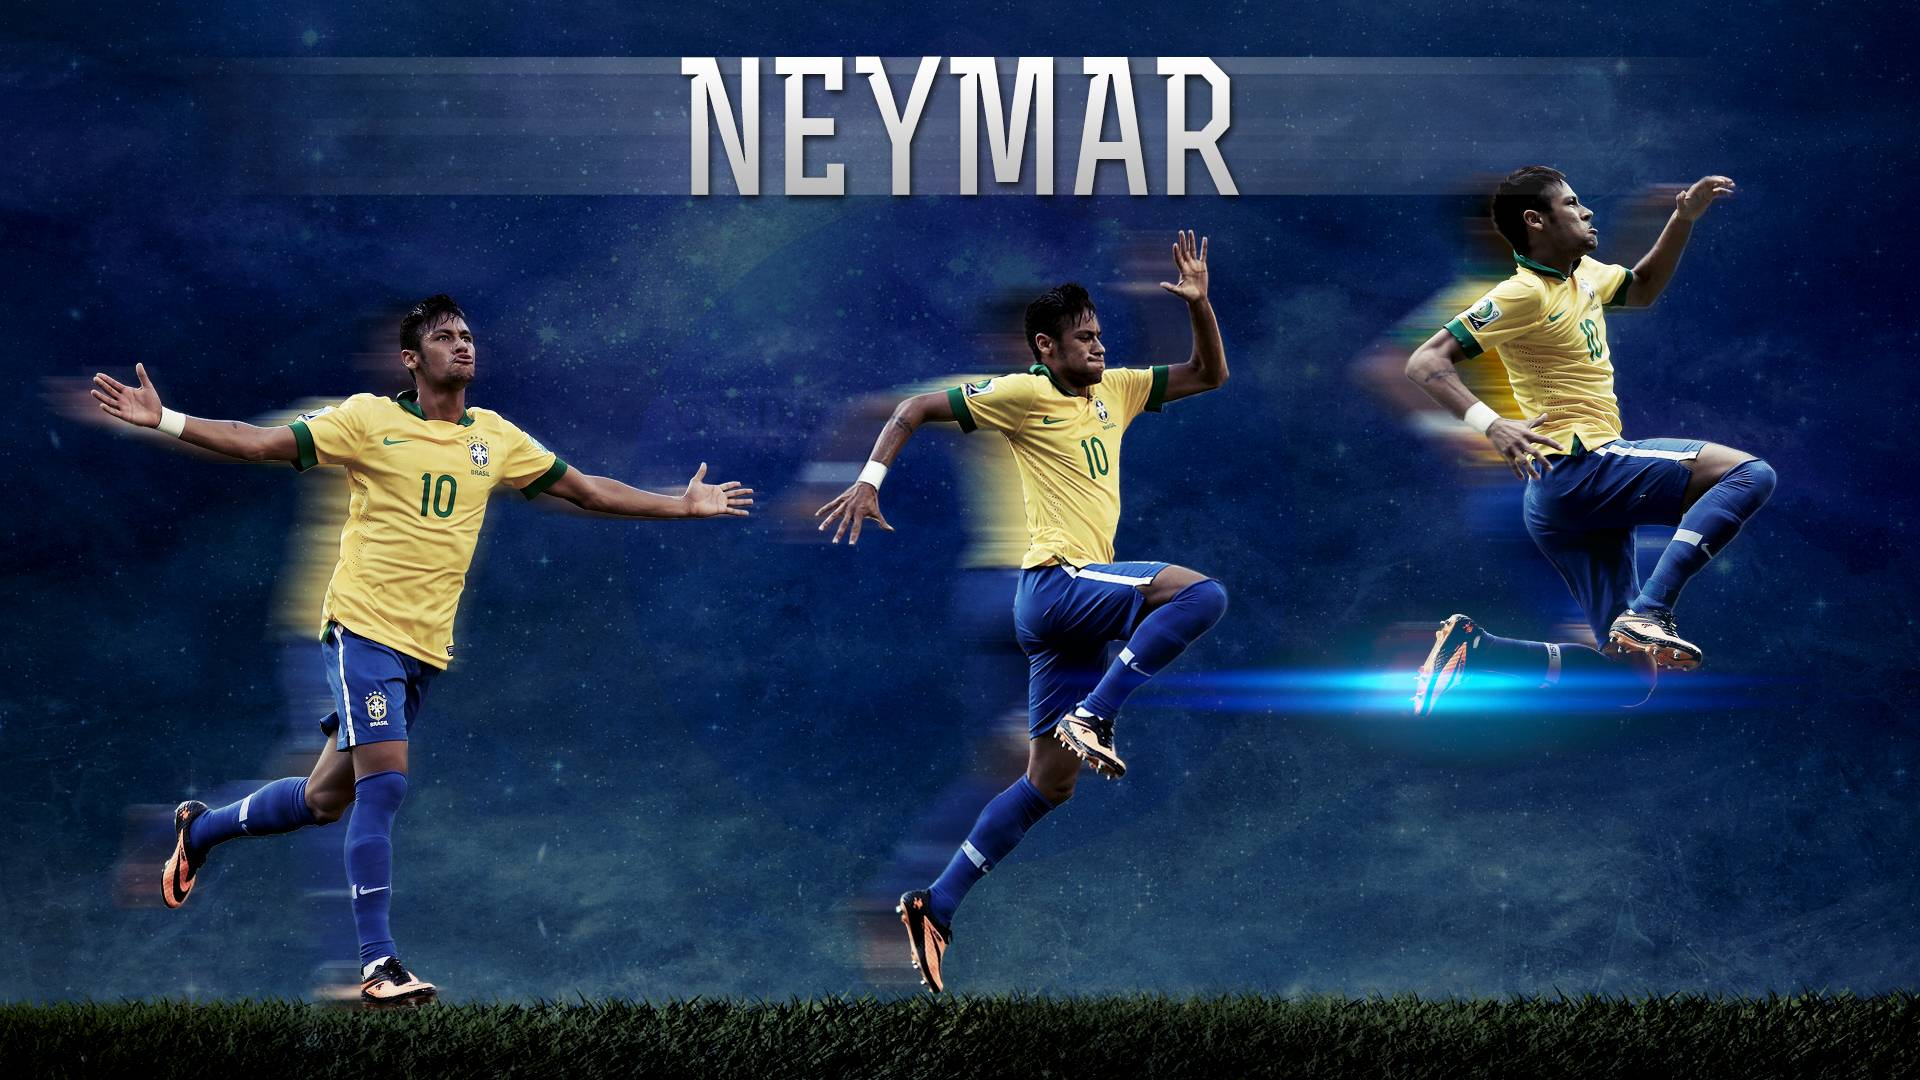 Neymar Hd Wallpaper 1080p Neymar Wallpapers Pictures Images